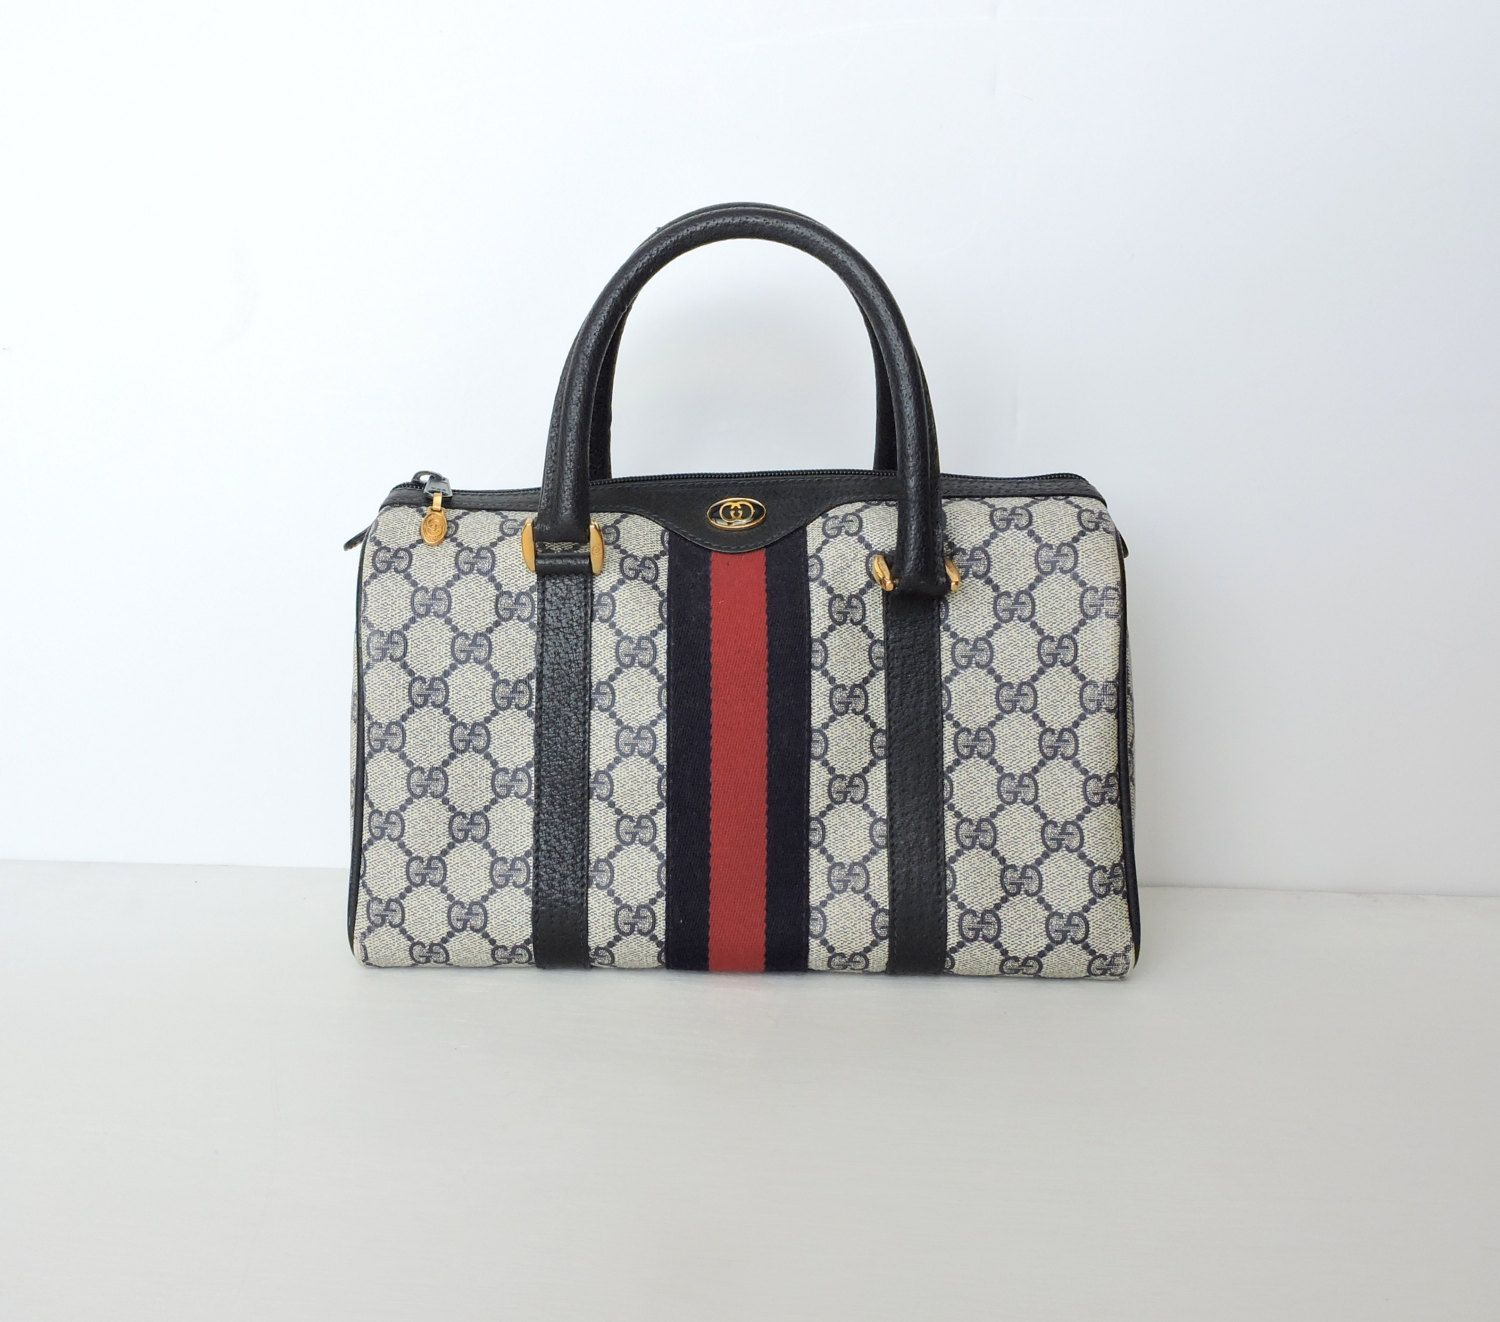 bff4251e0349 Authentic Vintage Gucci Bag, Navy Blue Gucci Speedy Satchel, Signature  Print Canvas and Leather Boston Gucci Purse, Red Stripe, Dust Cover by ...